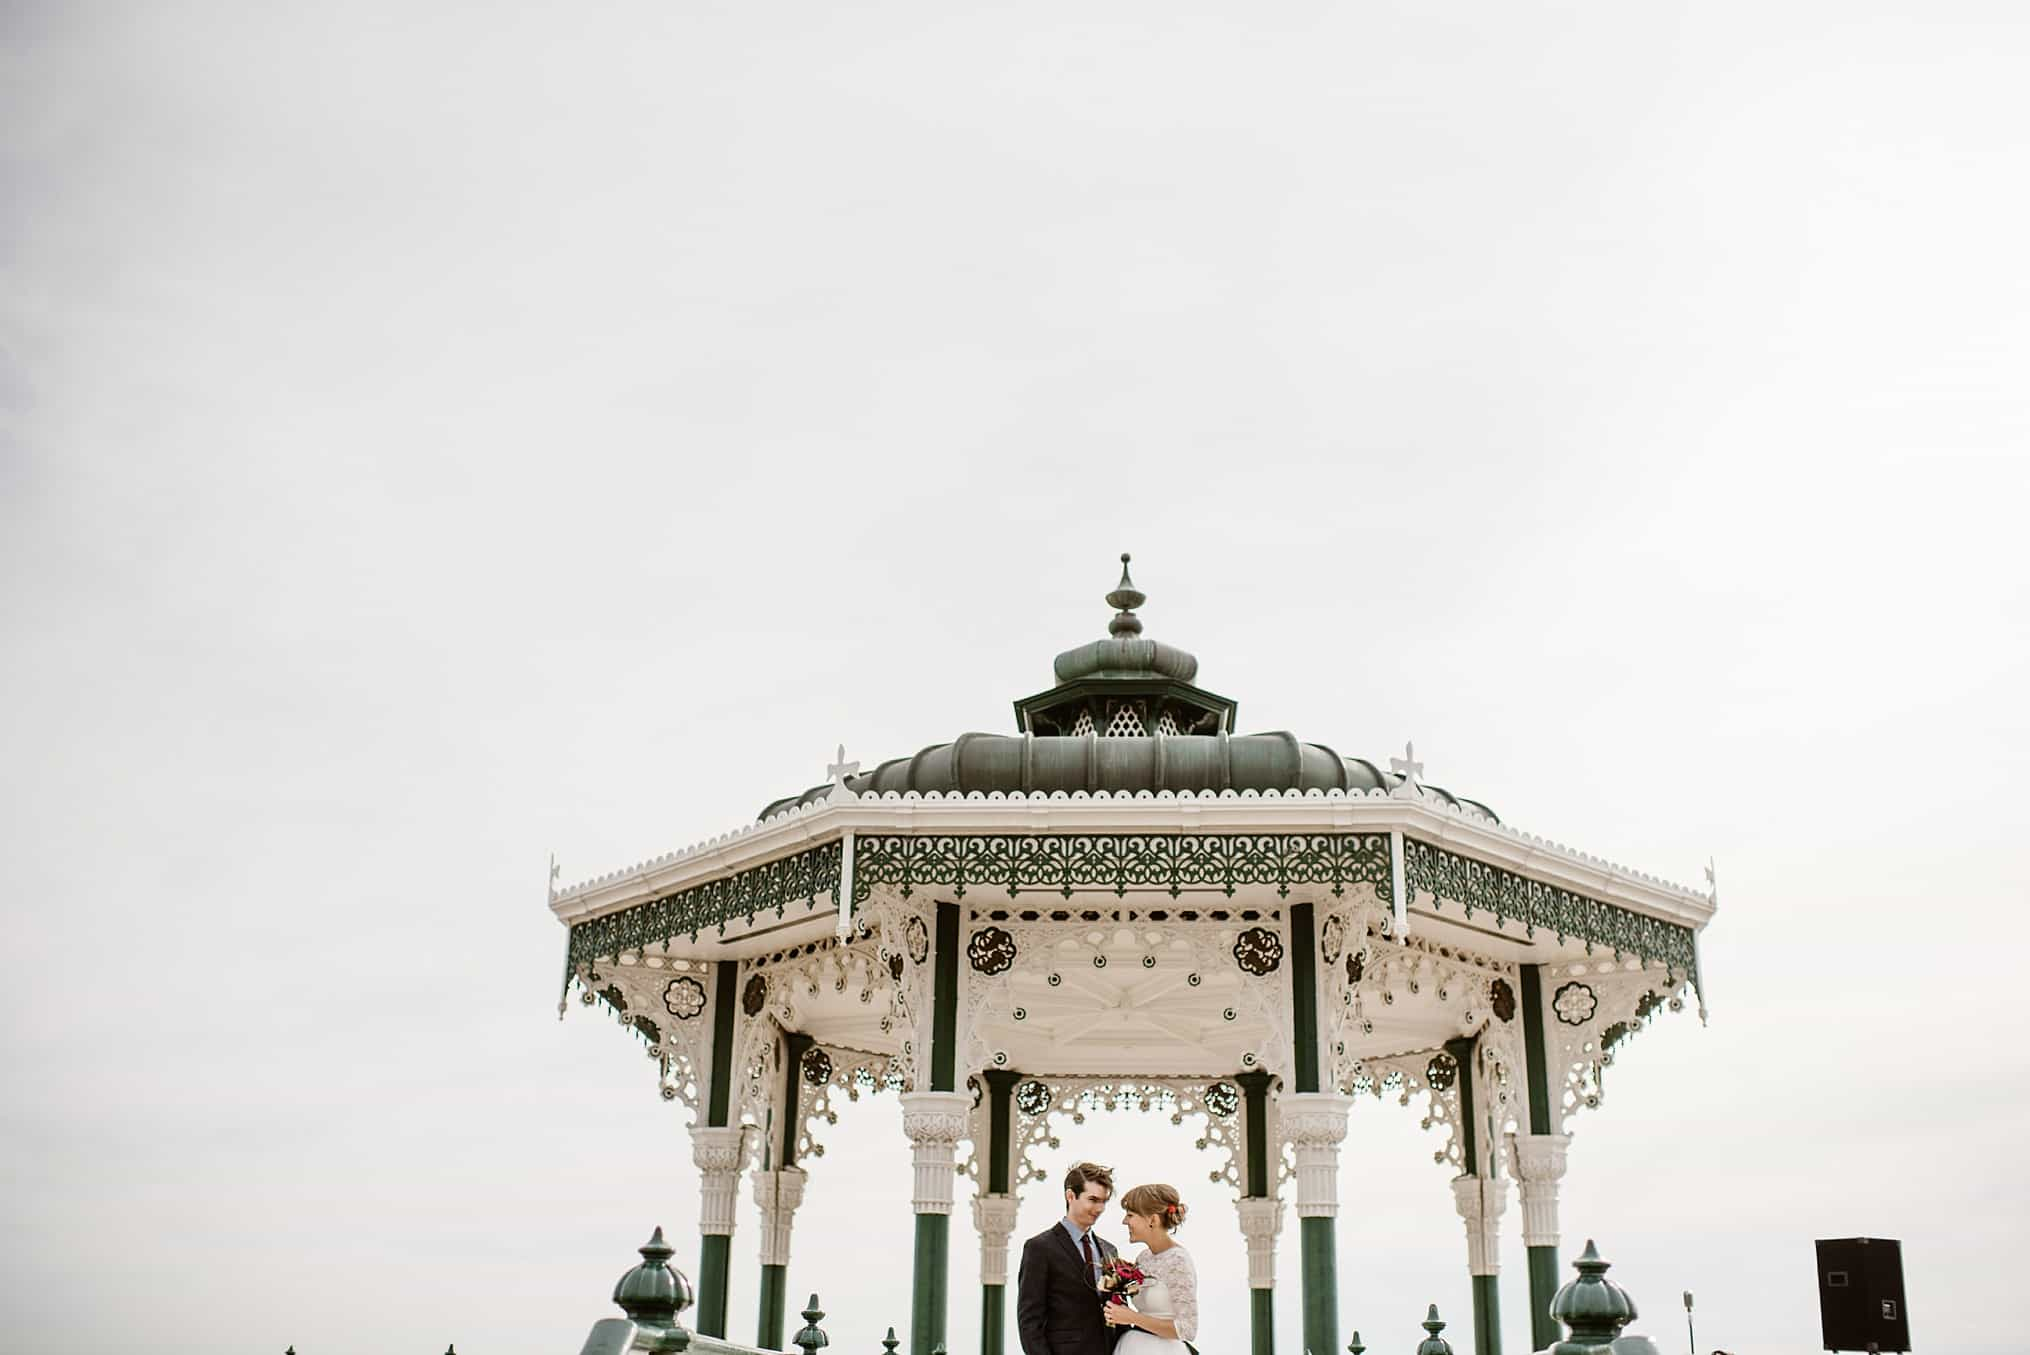 Brighton bandstand wedding photography